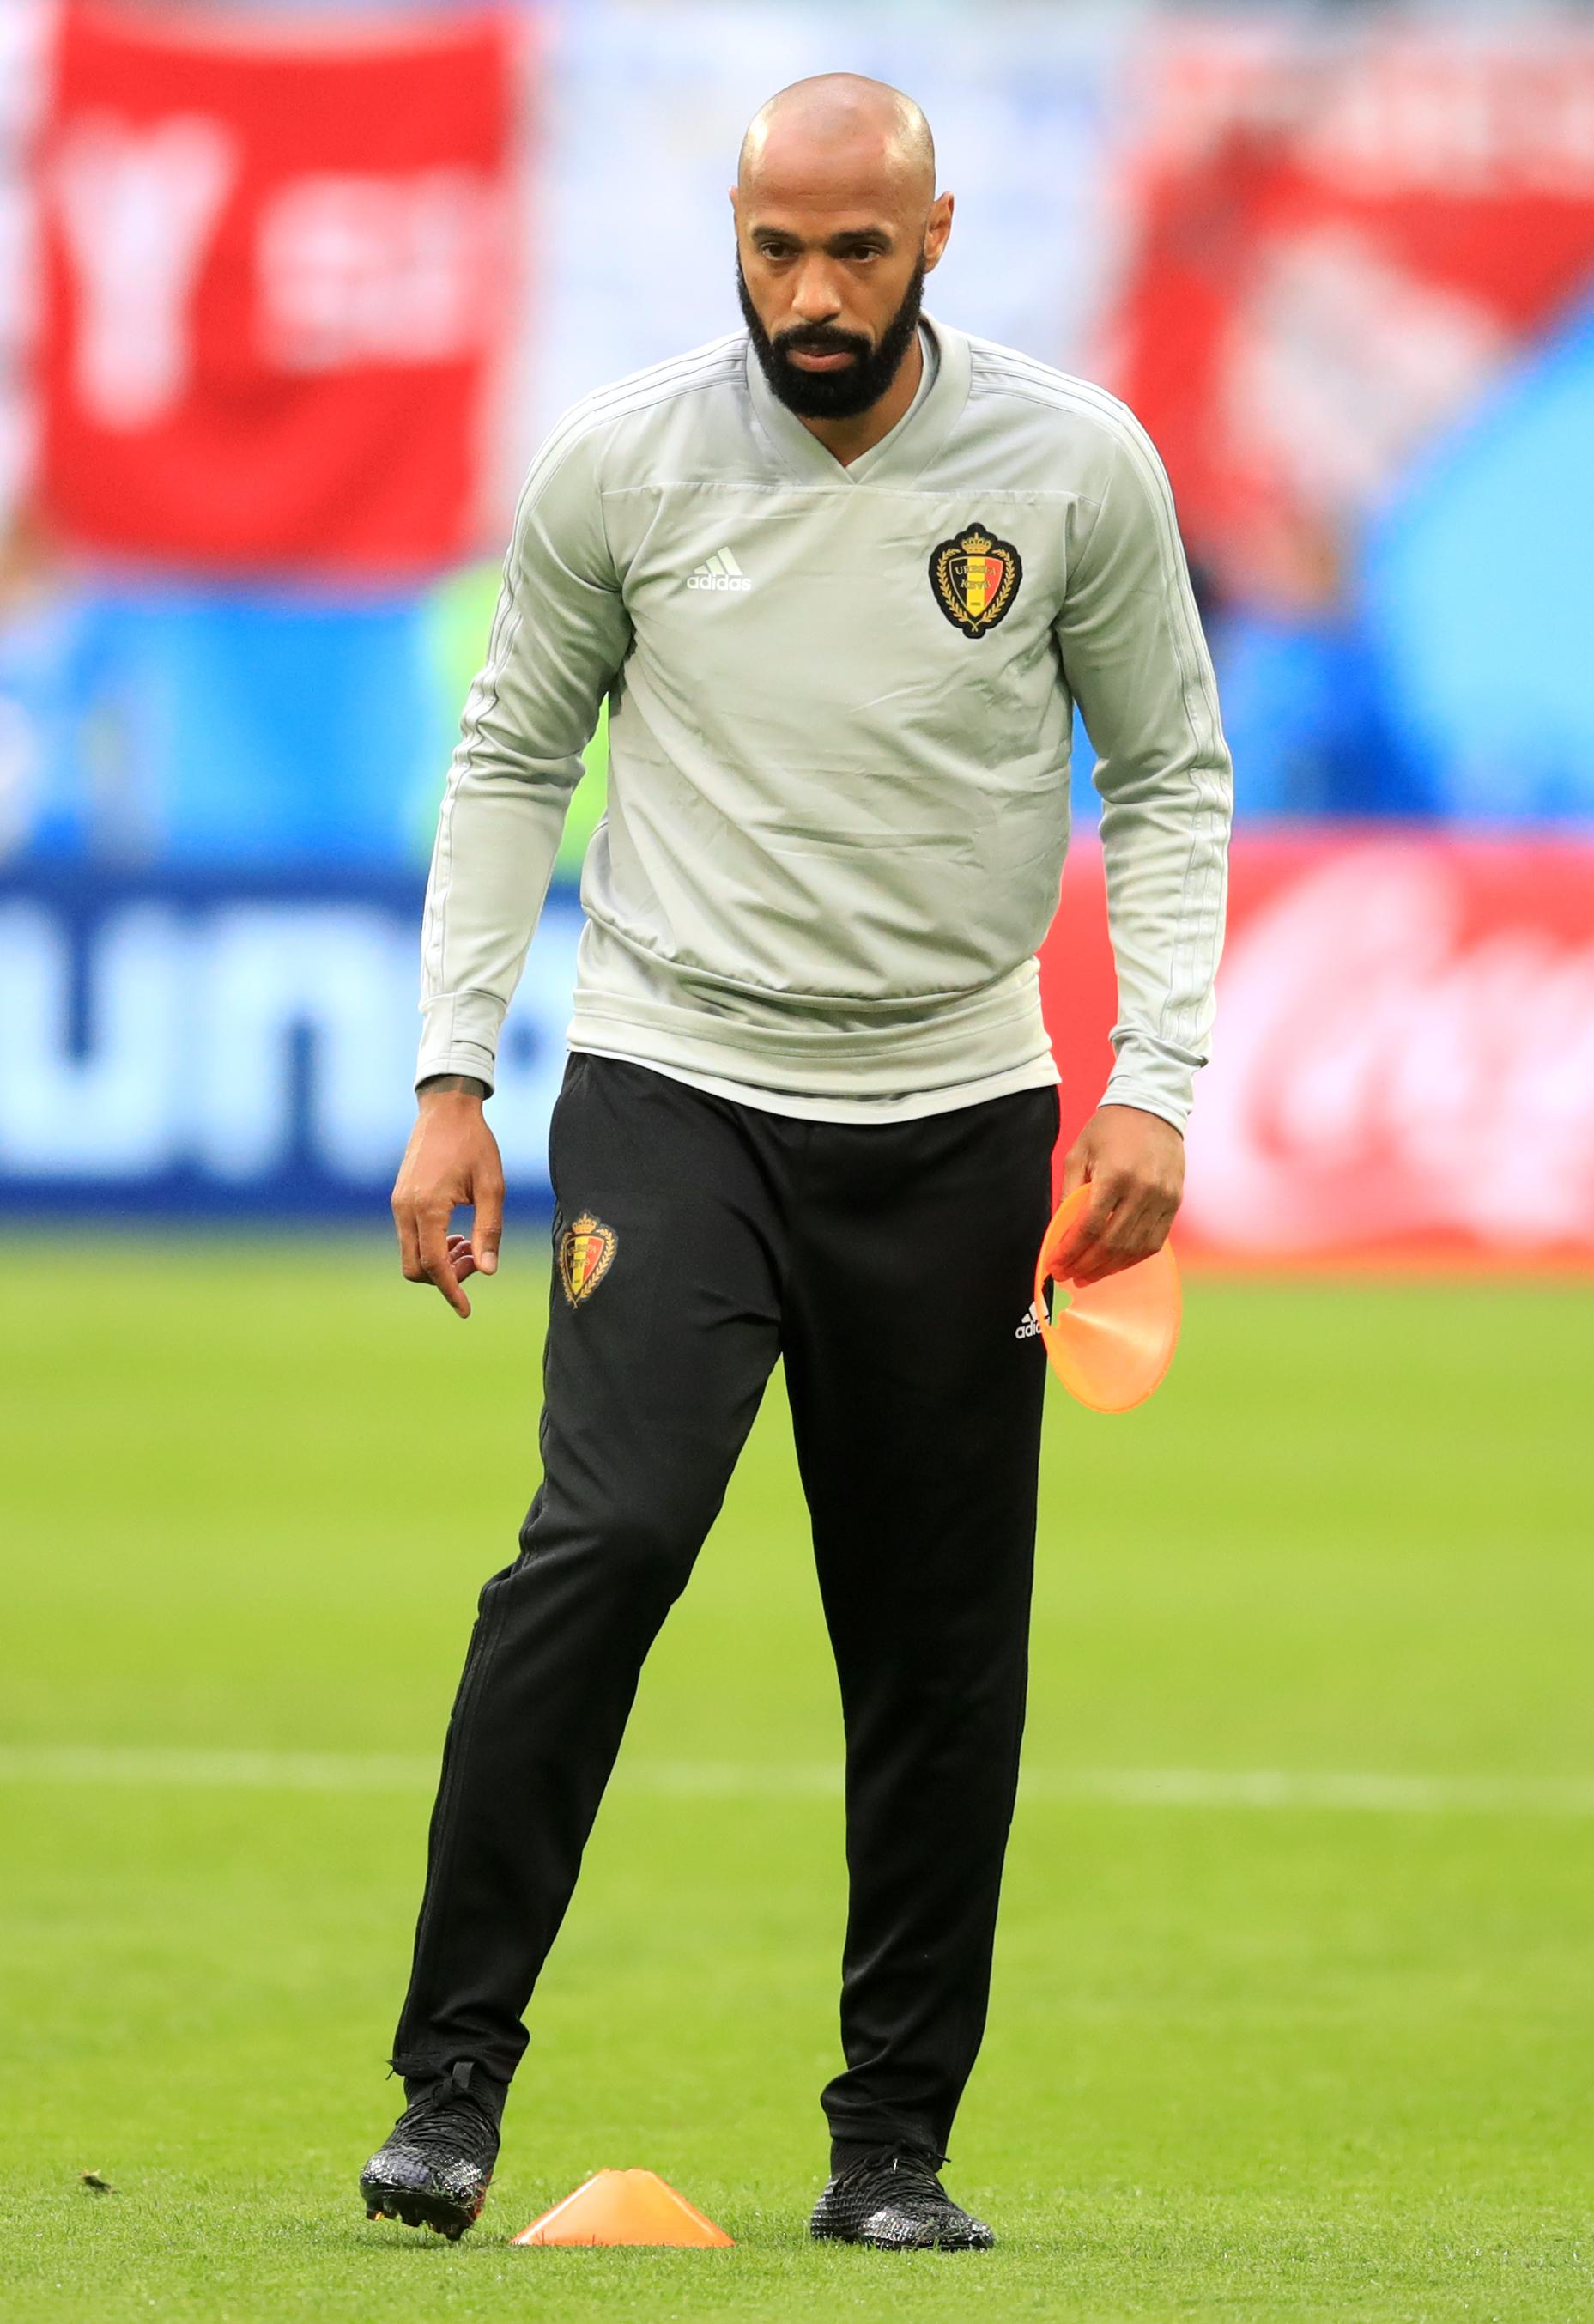 As Roberto Martinez's assistant in Russia, Henry helped guide Belgium to a third-placed finish at the World Cup this summer